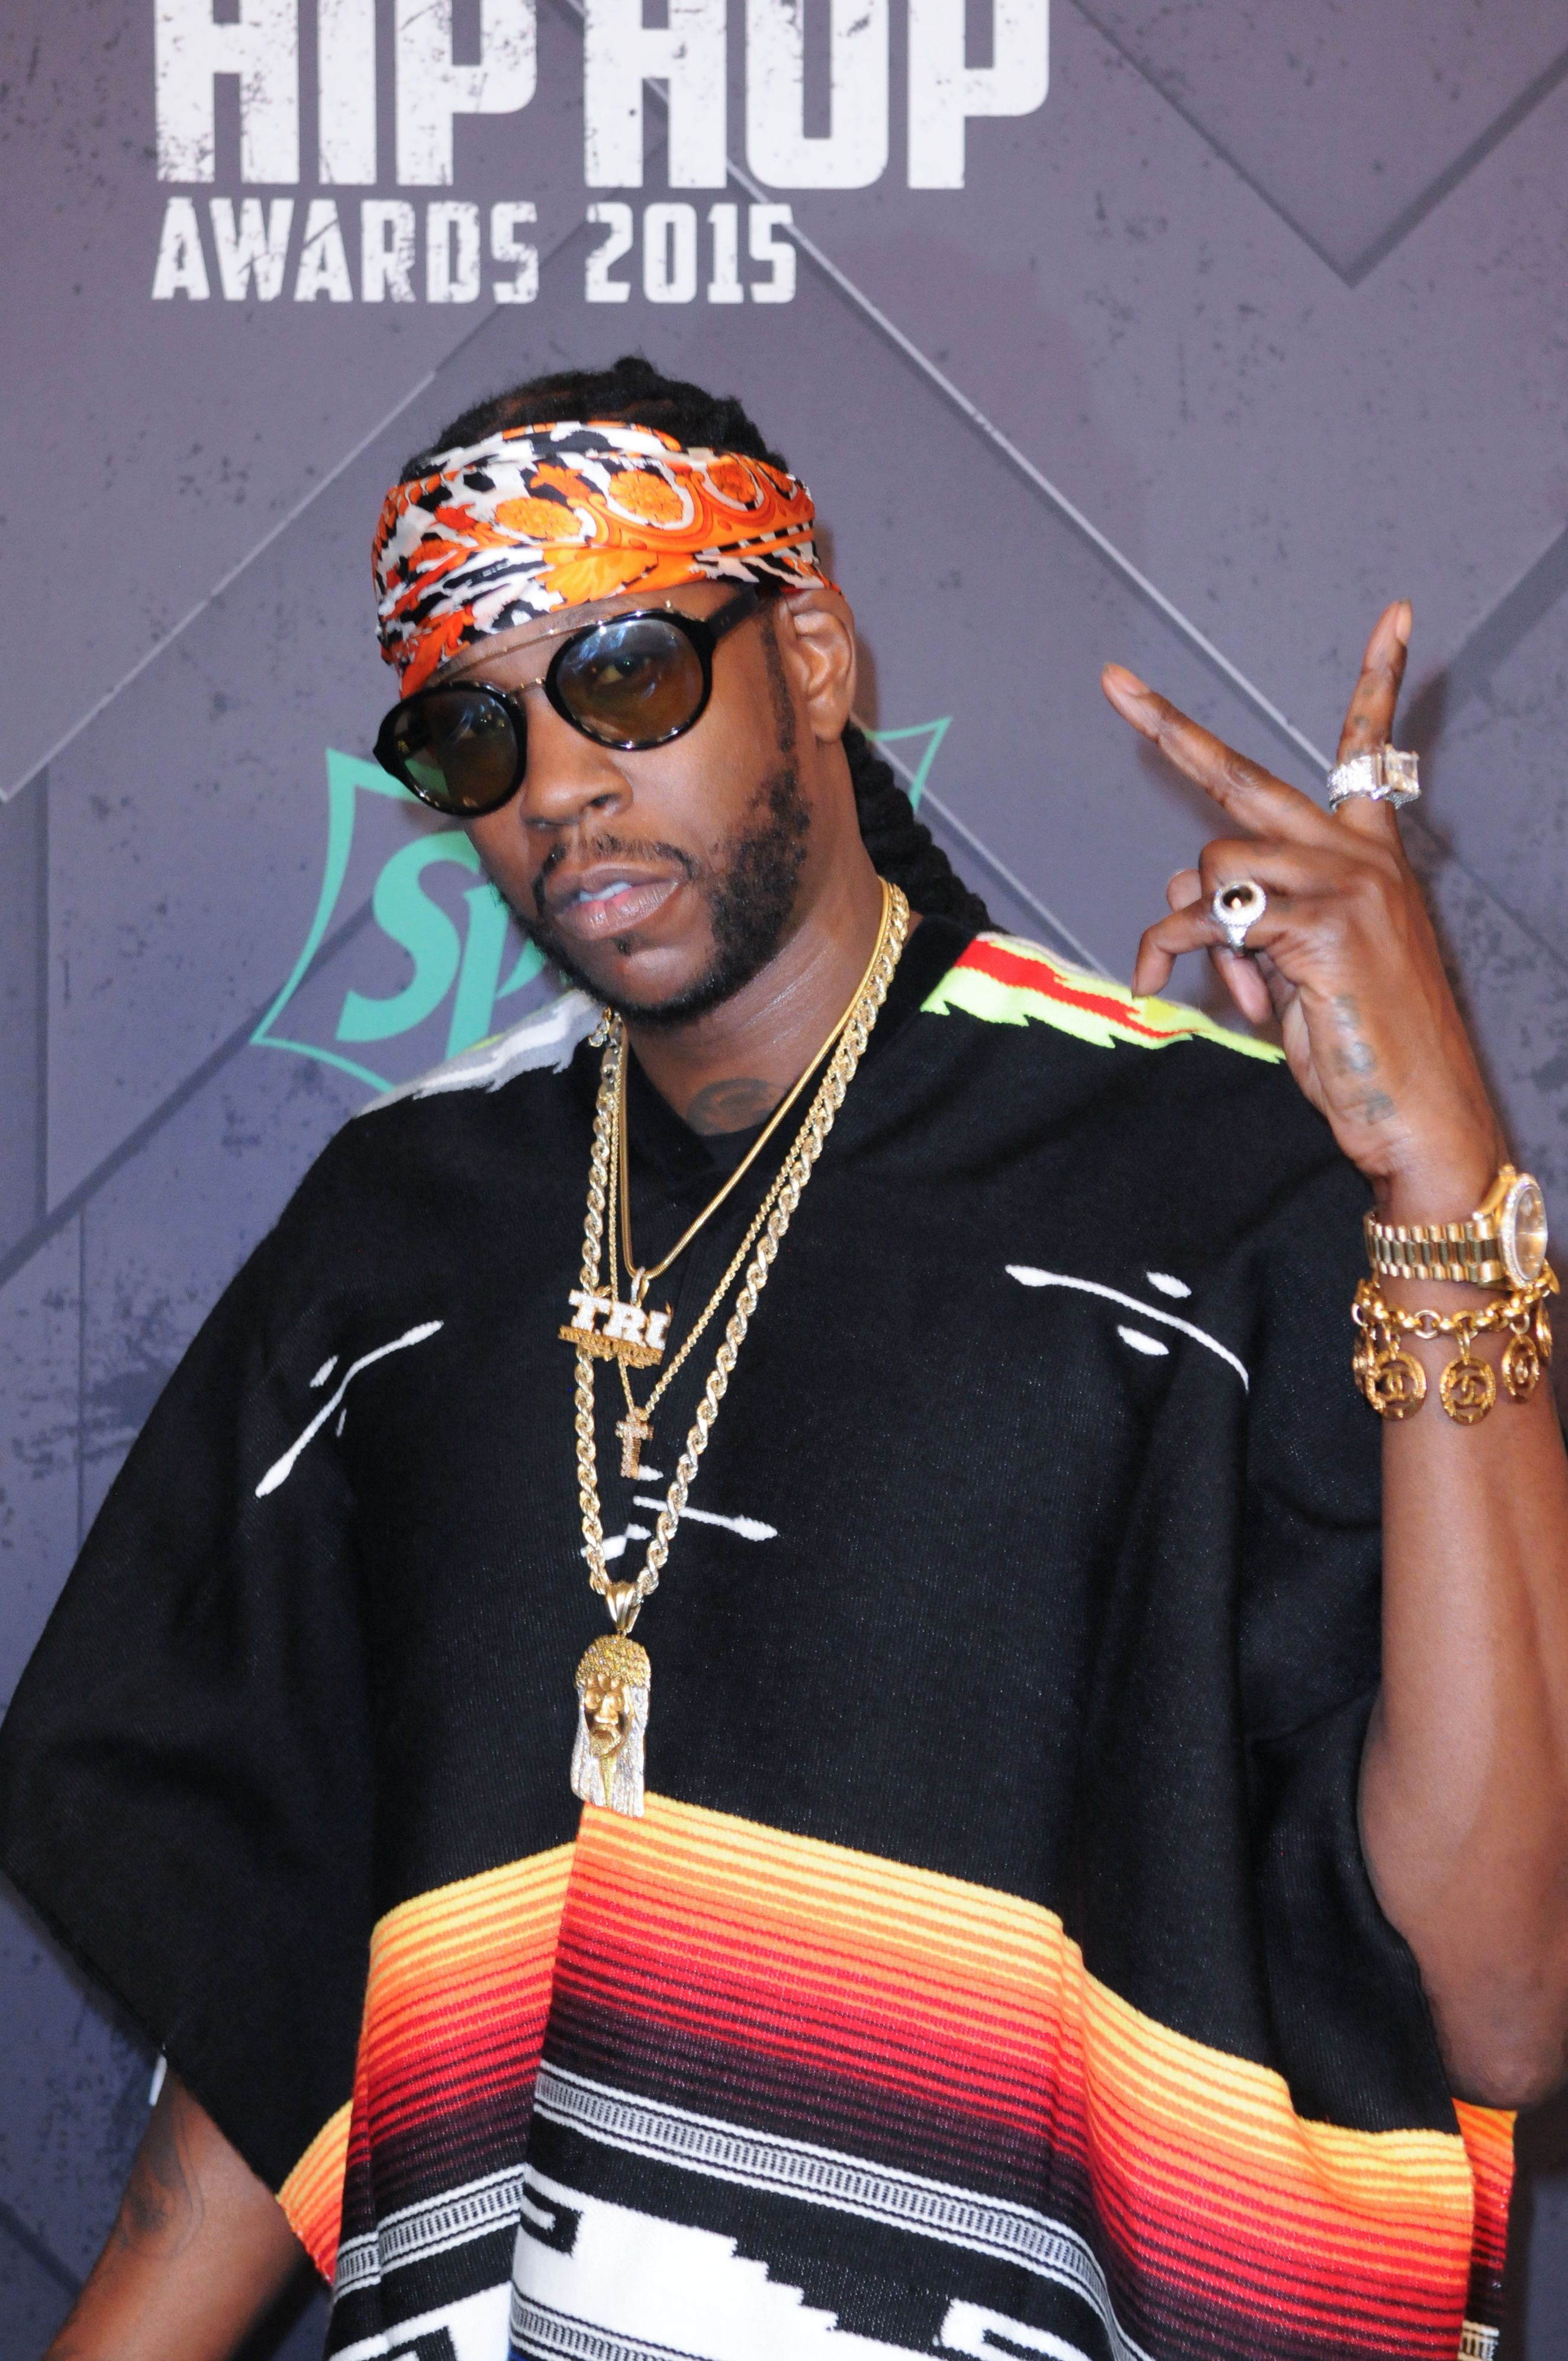 2015 BET Hip Hip Awards at the Atlanta Civic Center - Arrivals  Featuring: 2 Chainz Where: Atlanta, Georgia, United States When: 09 Oct 2015 Credit: WENN.com